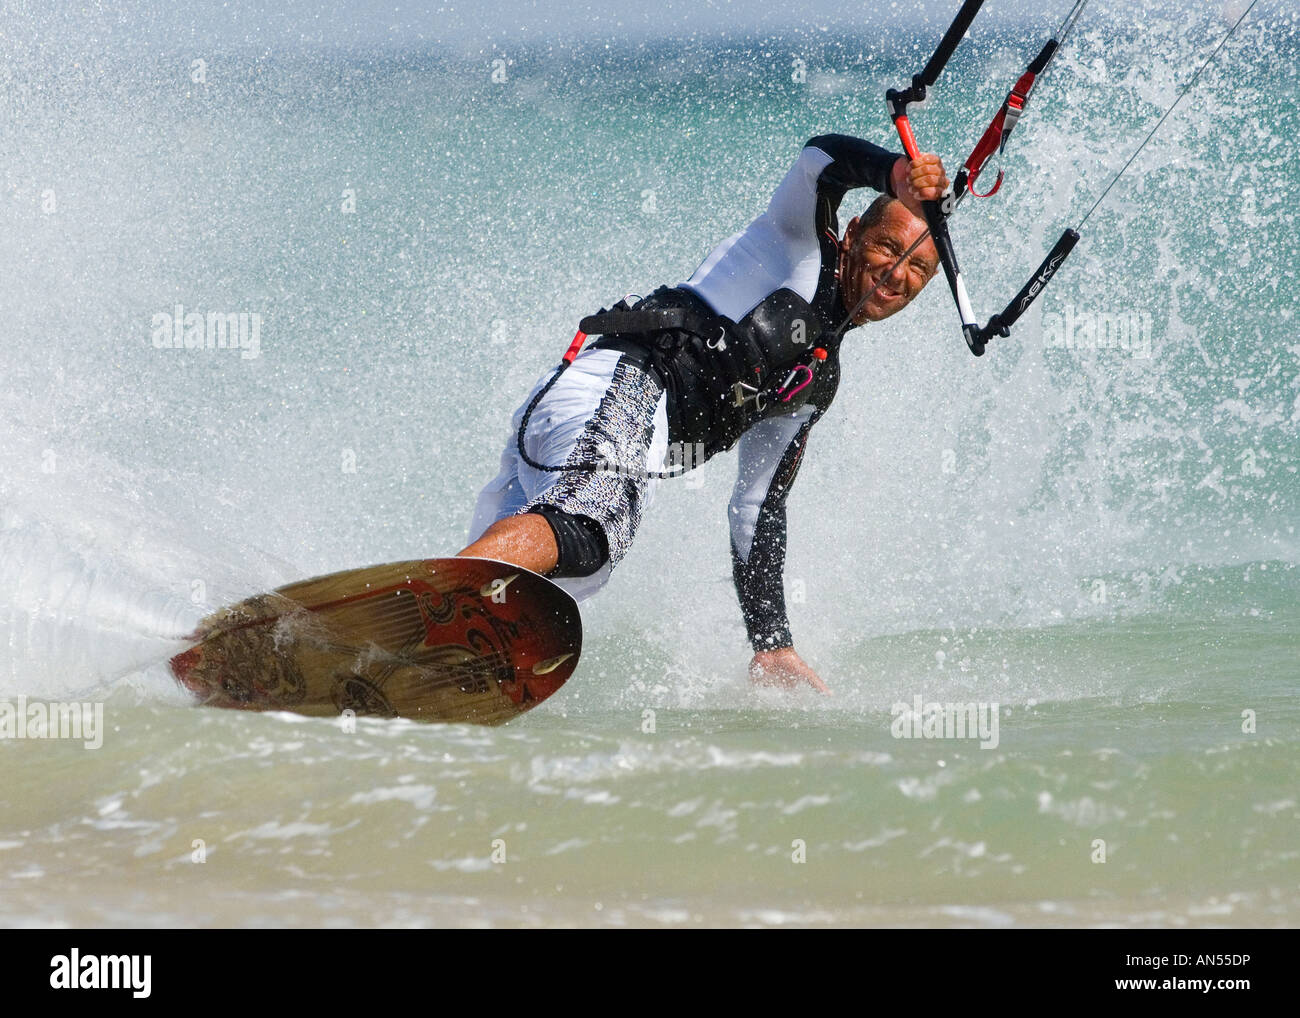 man enjoing kitesurfing - Stock Image